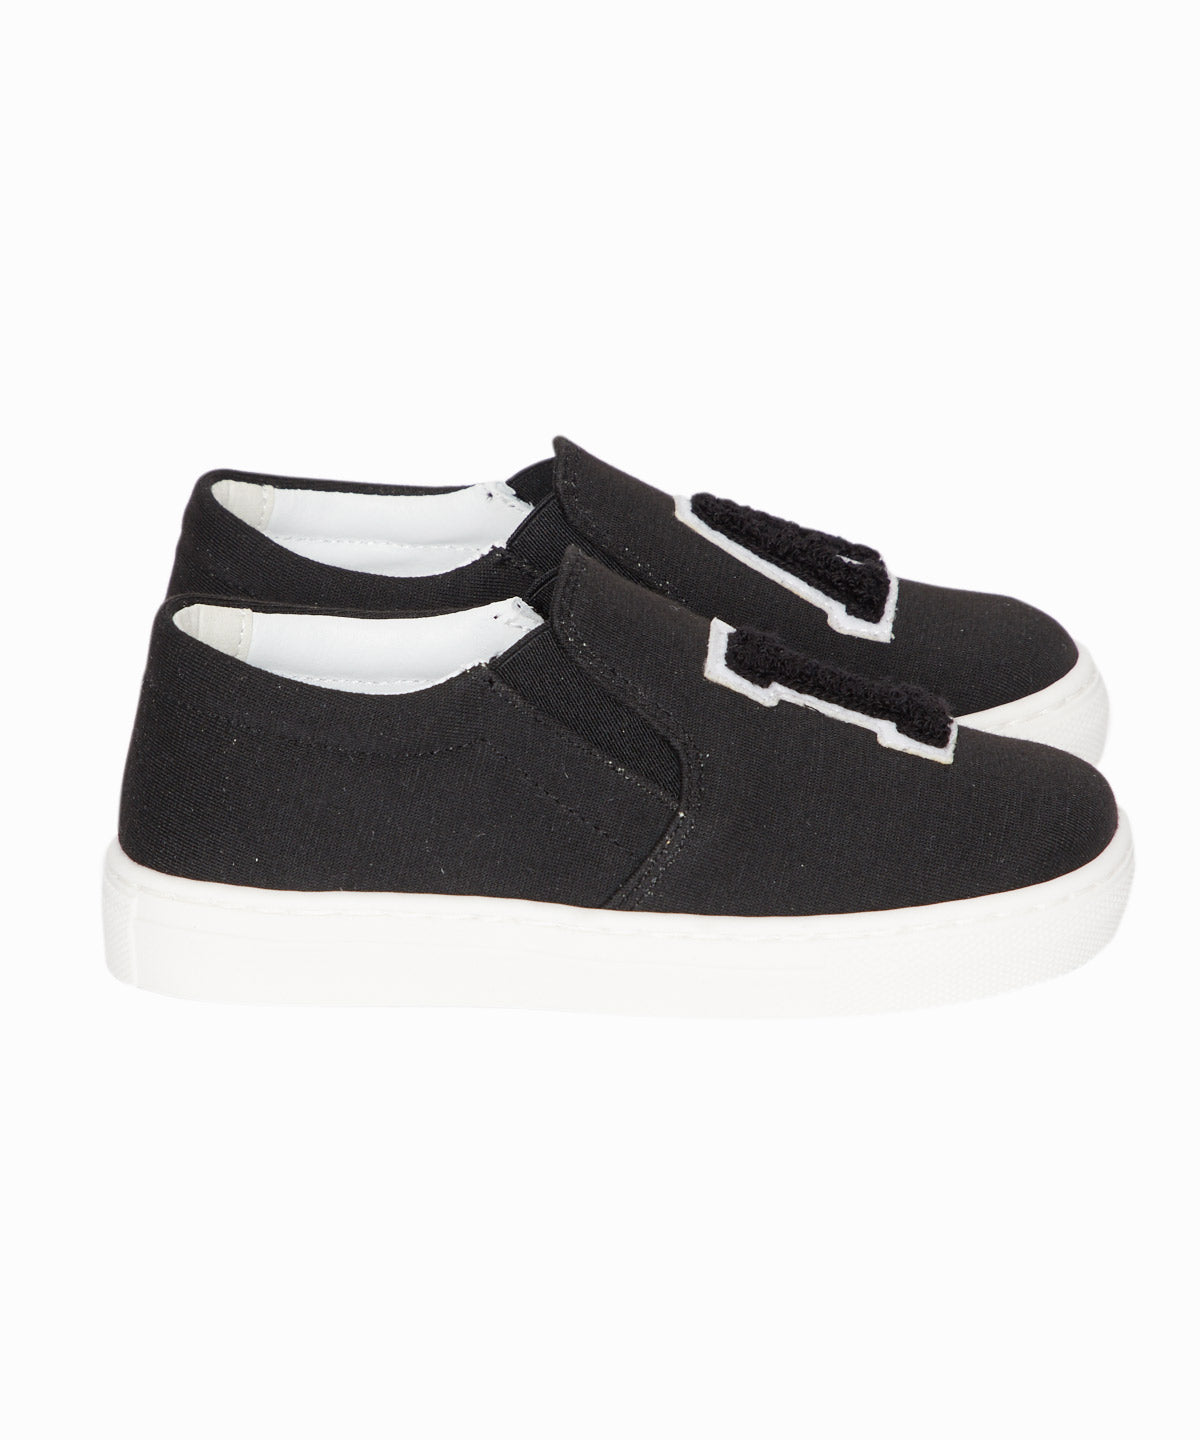 LA Black Jersey Slip-On Sneakers